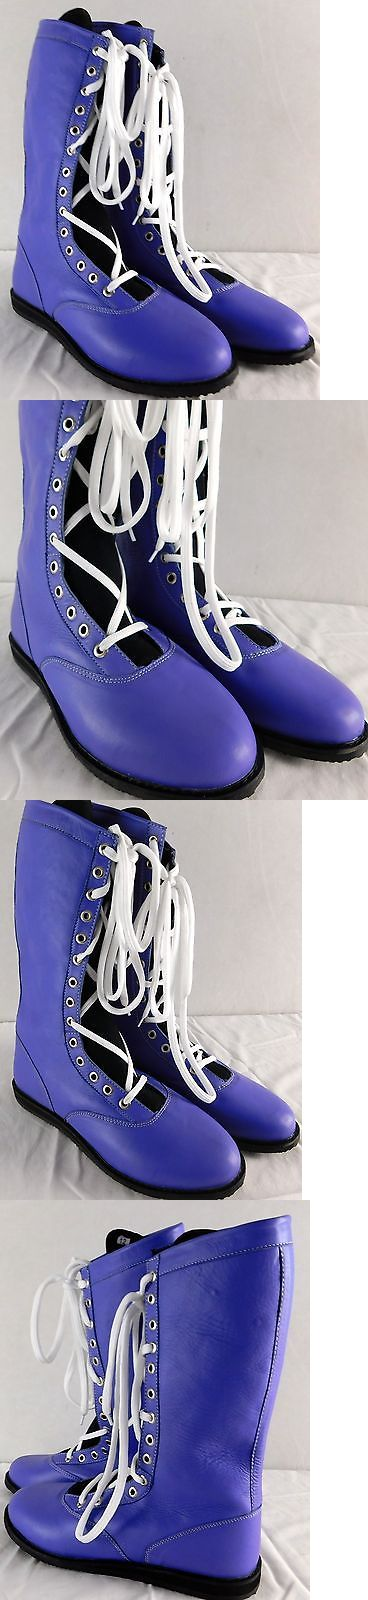 Footwear 79799: Purple Pro Wrestling Boots Size 12 Adult New Lucha Libre Gear Wwe Outfit -> BUY IT NOW ONLY: $149.99 on eBay!